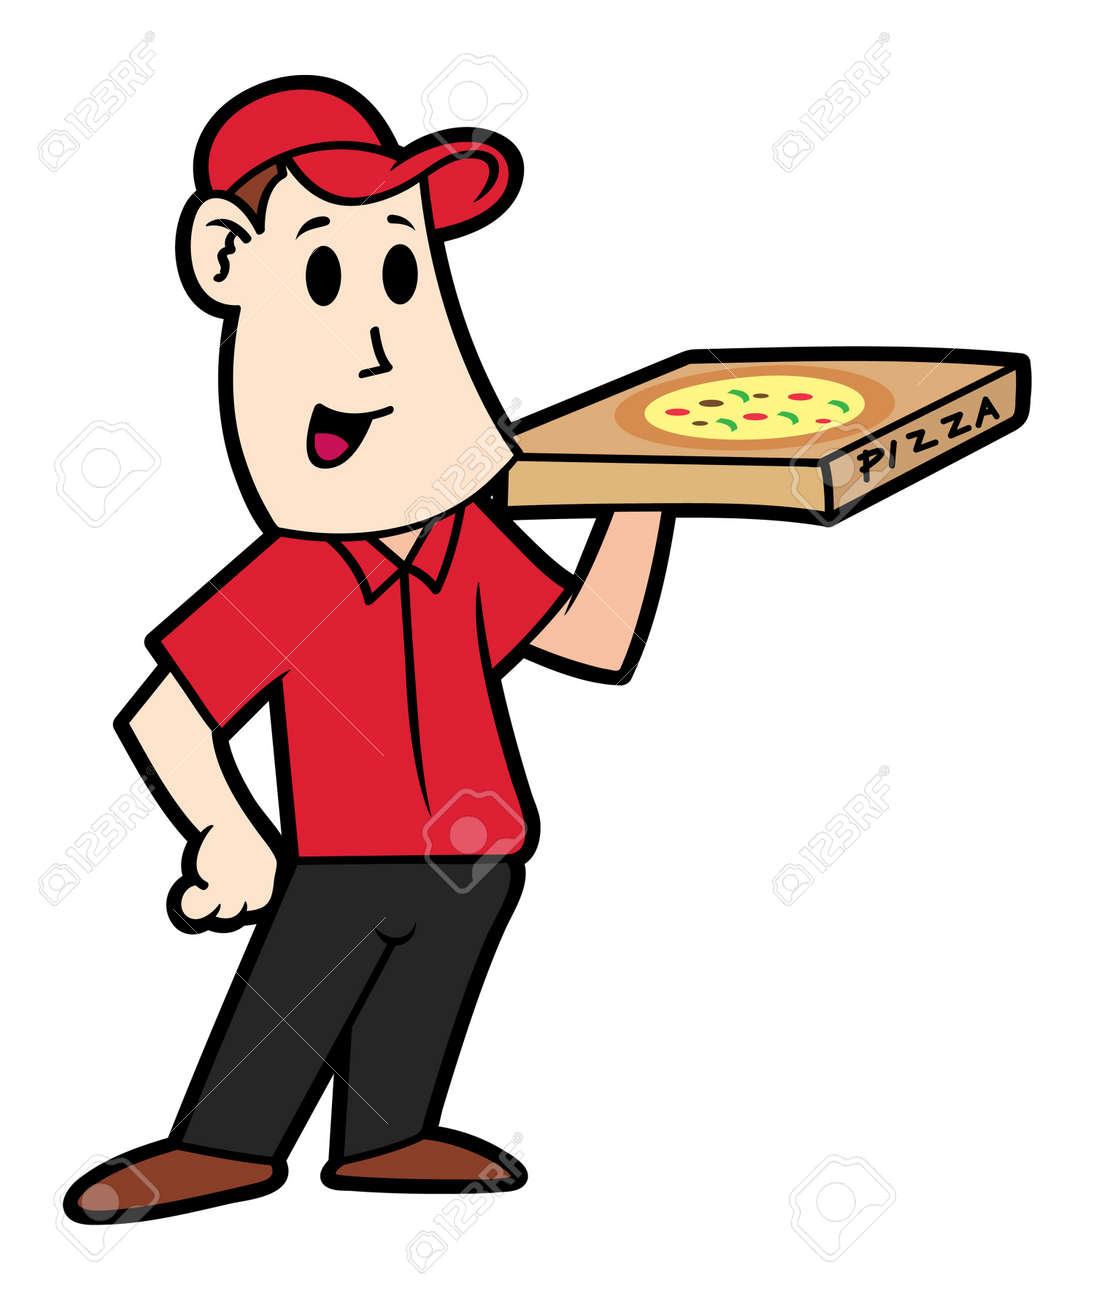 Image result for pizza driver cartoon